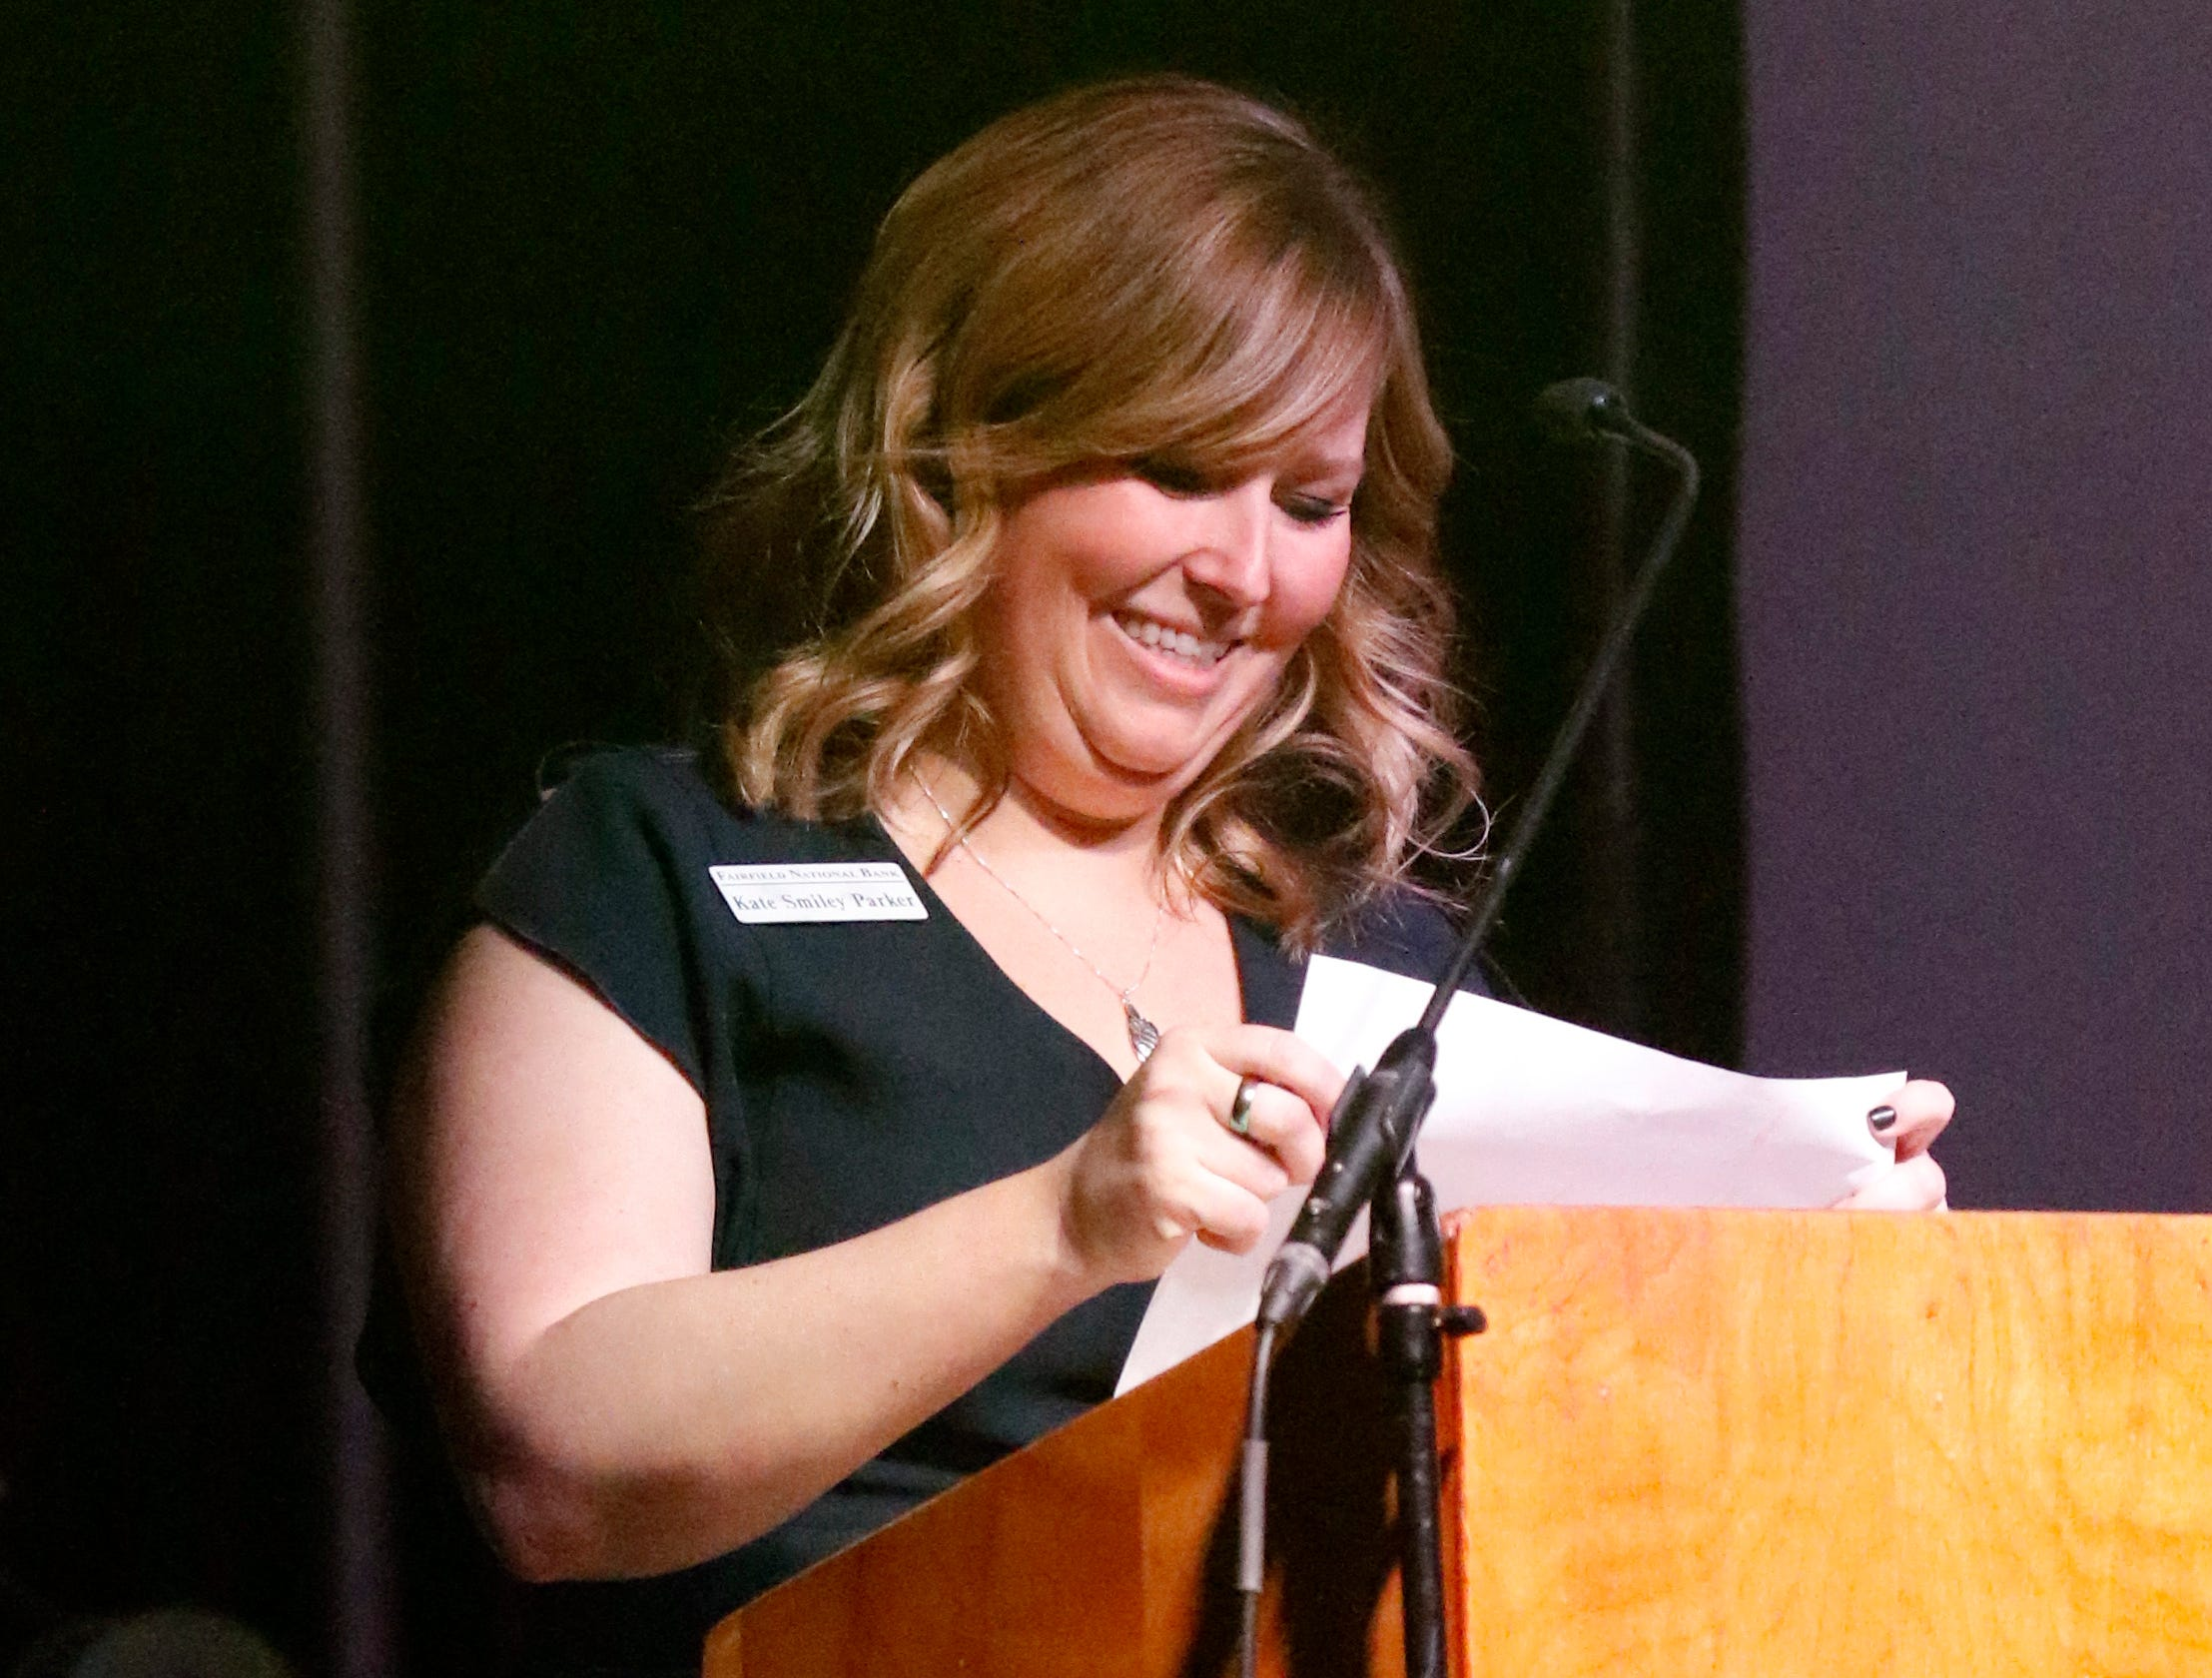 Kate Smiley Parker, Freedom Years Director for Fairfield National Bank, accepts the Tammy Nusser Community Service Award Saturday, Jan. 19, 2019, at the Lancaster Fairfield County Chamber of Commerce Awards Ceremony at Fisher Catholic High School in Lancaster.